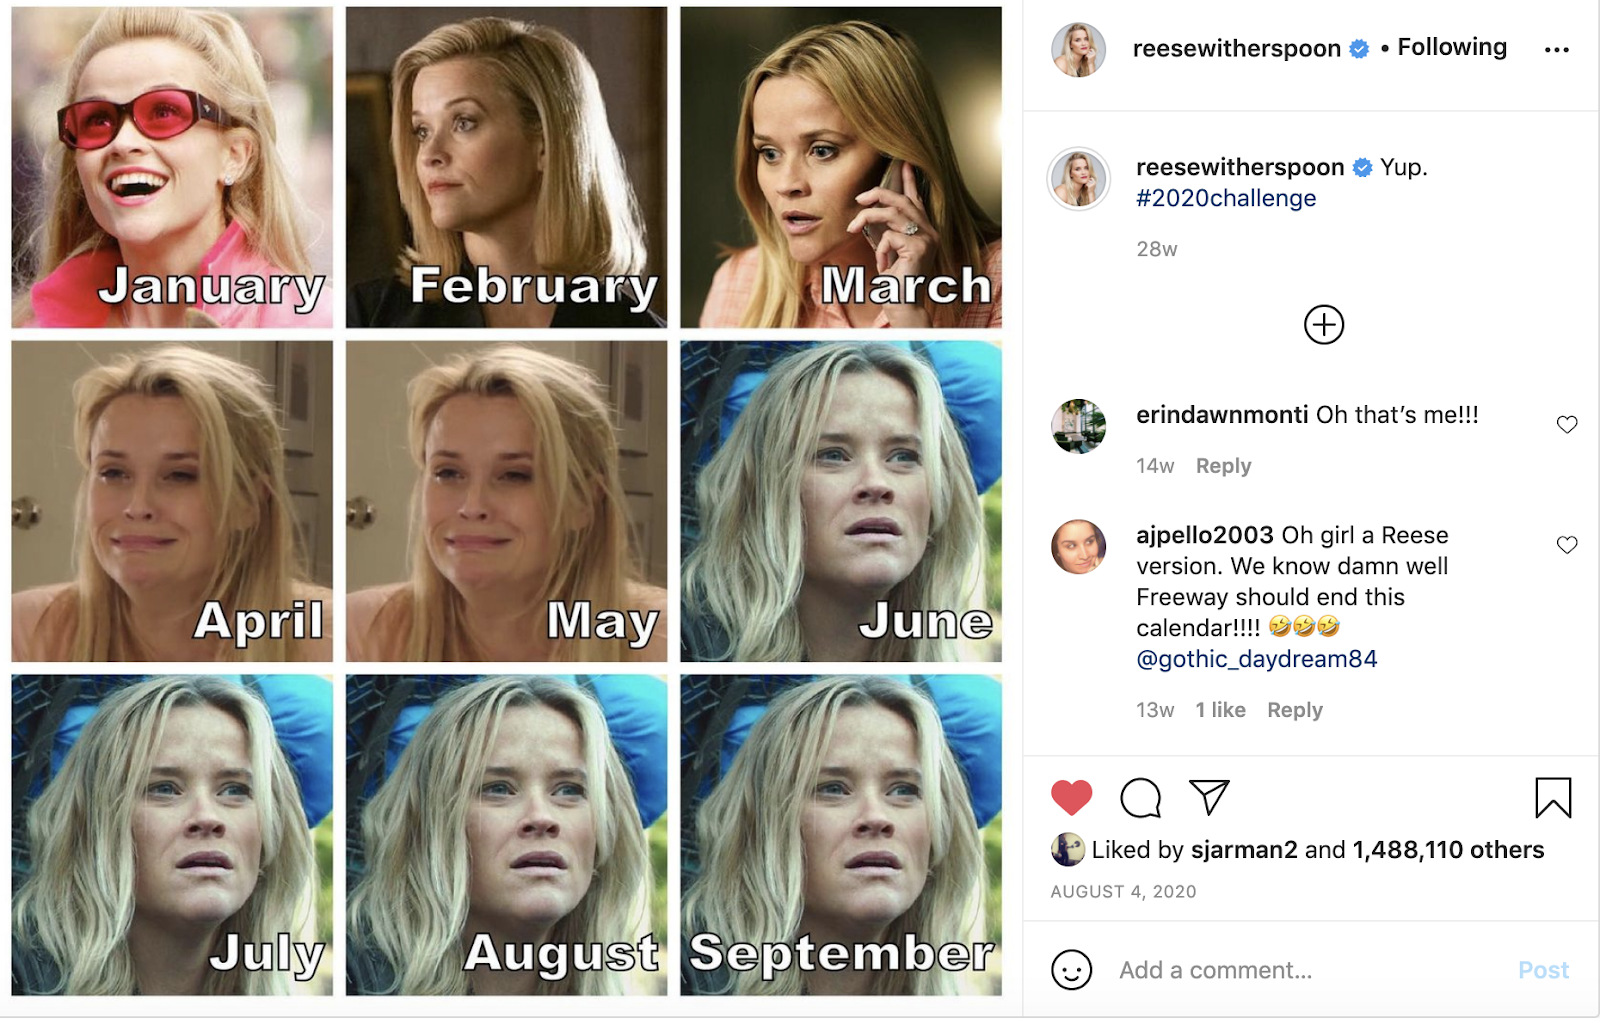 reese witherspoon 2020 challenge meme